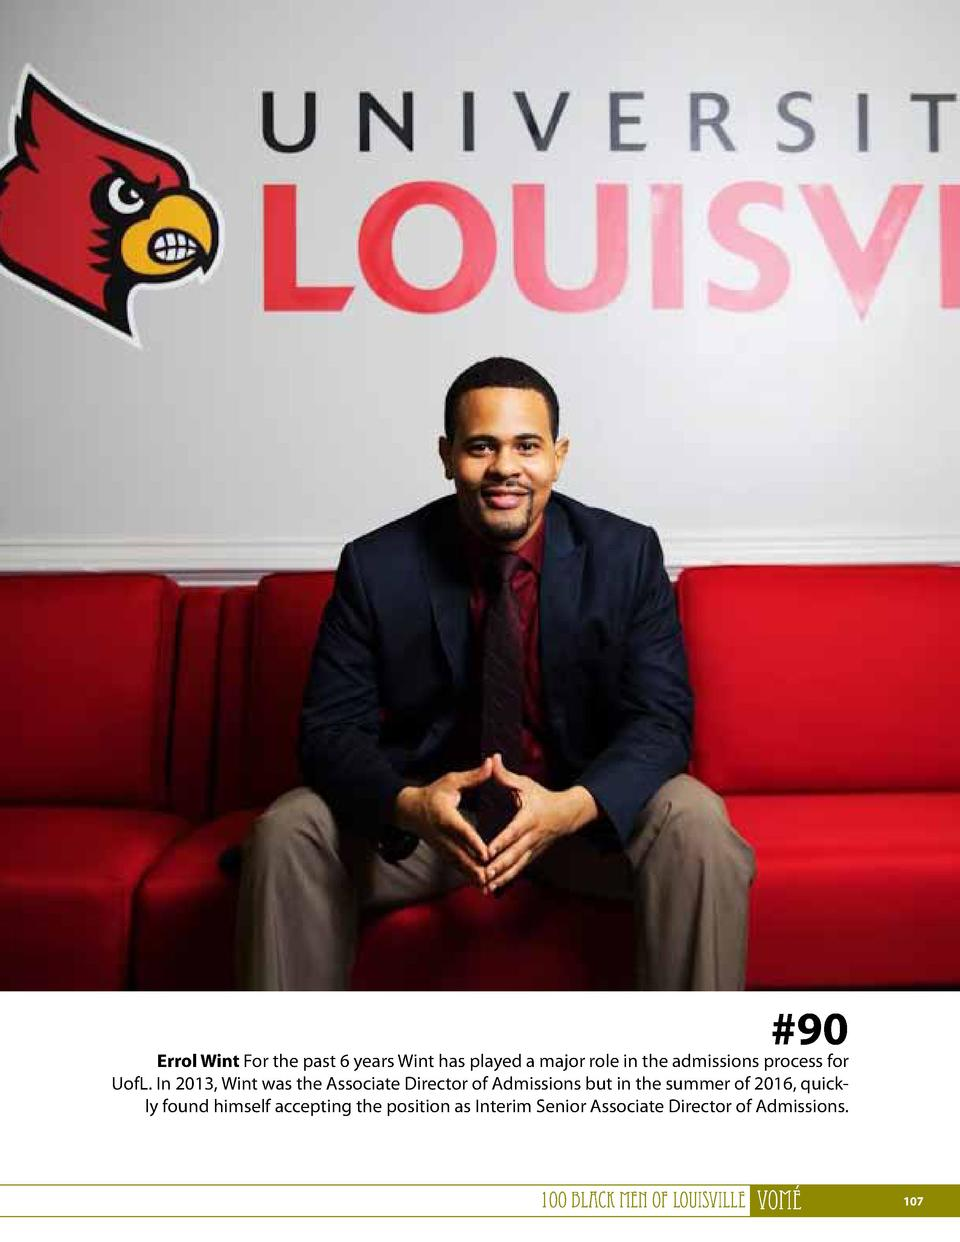 90  Errol Wint For the past 6 years Wint has played a major role in the admissions process for UofL. In 2013, Wint was th...